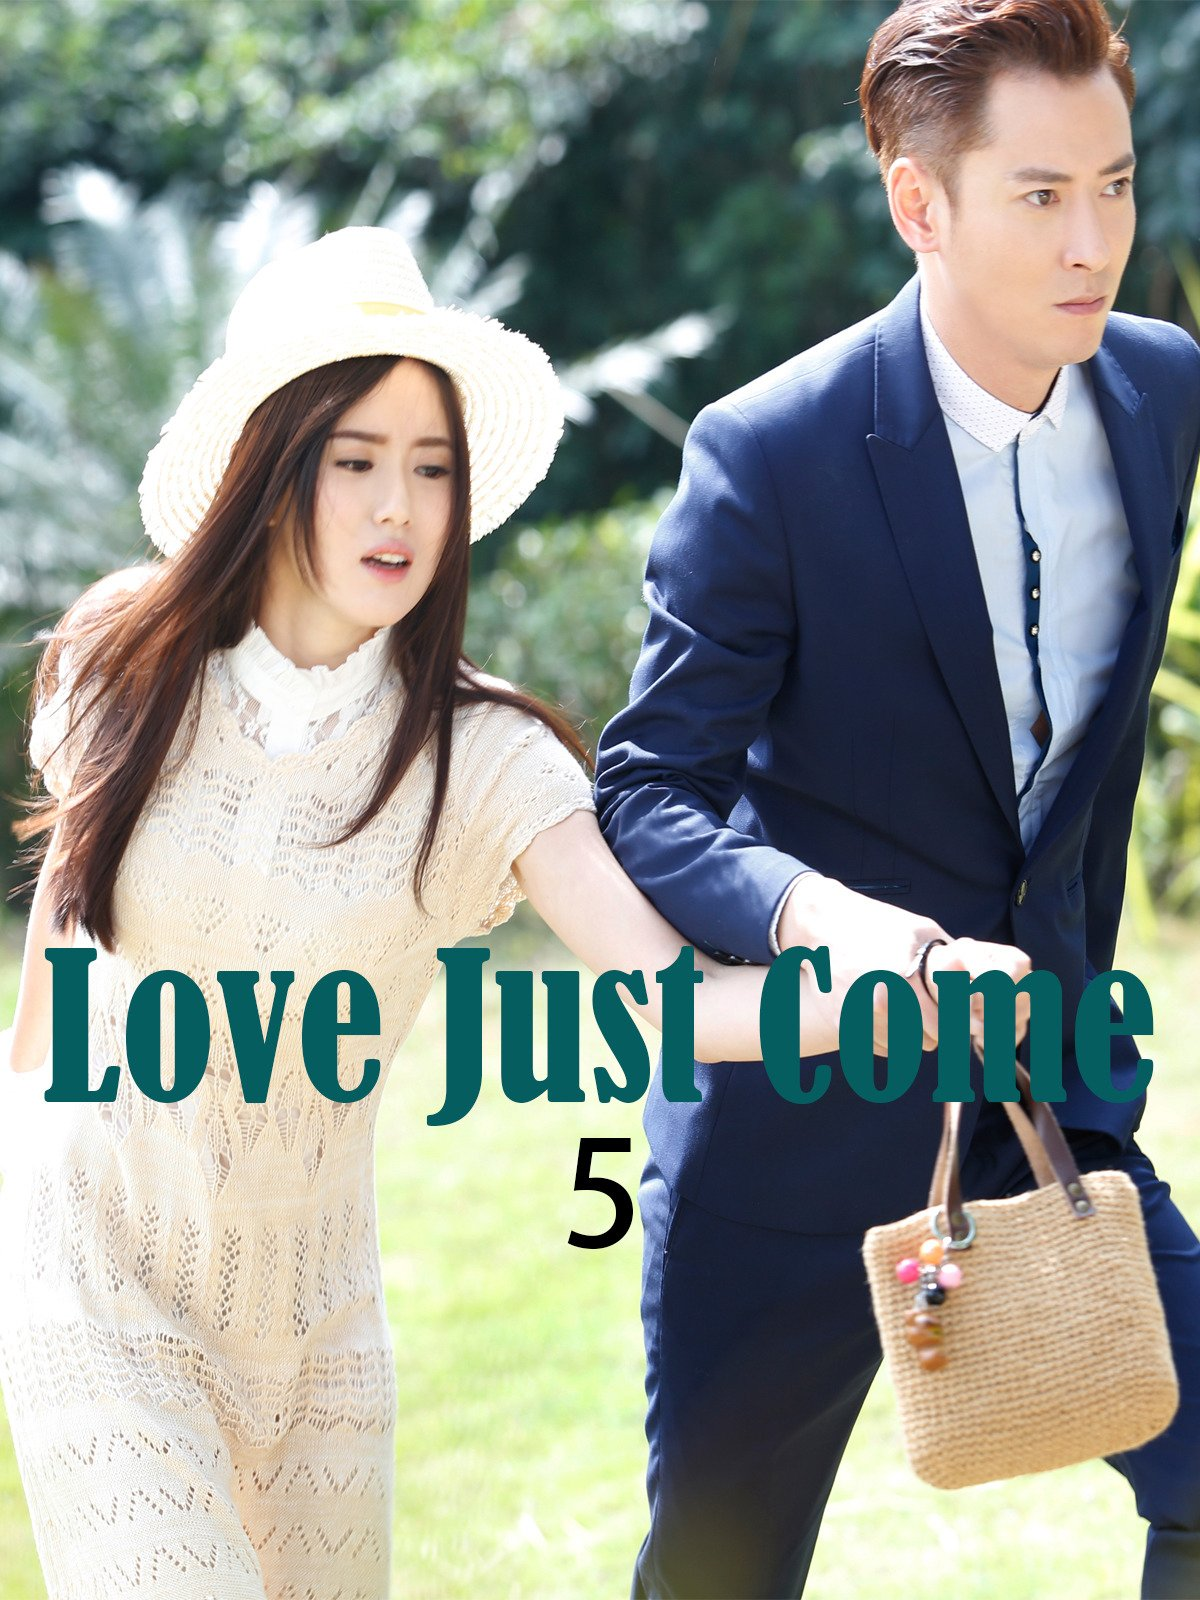 Love Just Come 5 on Amazon Prime Instant Video UK